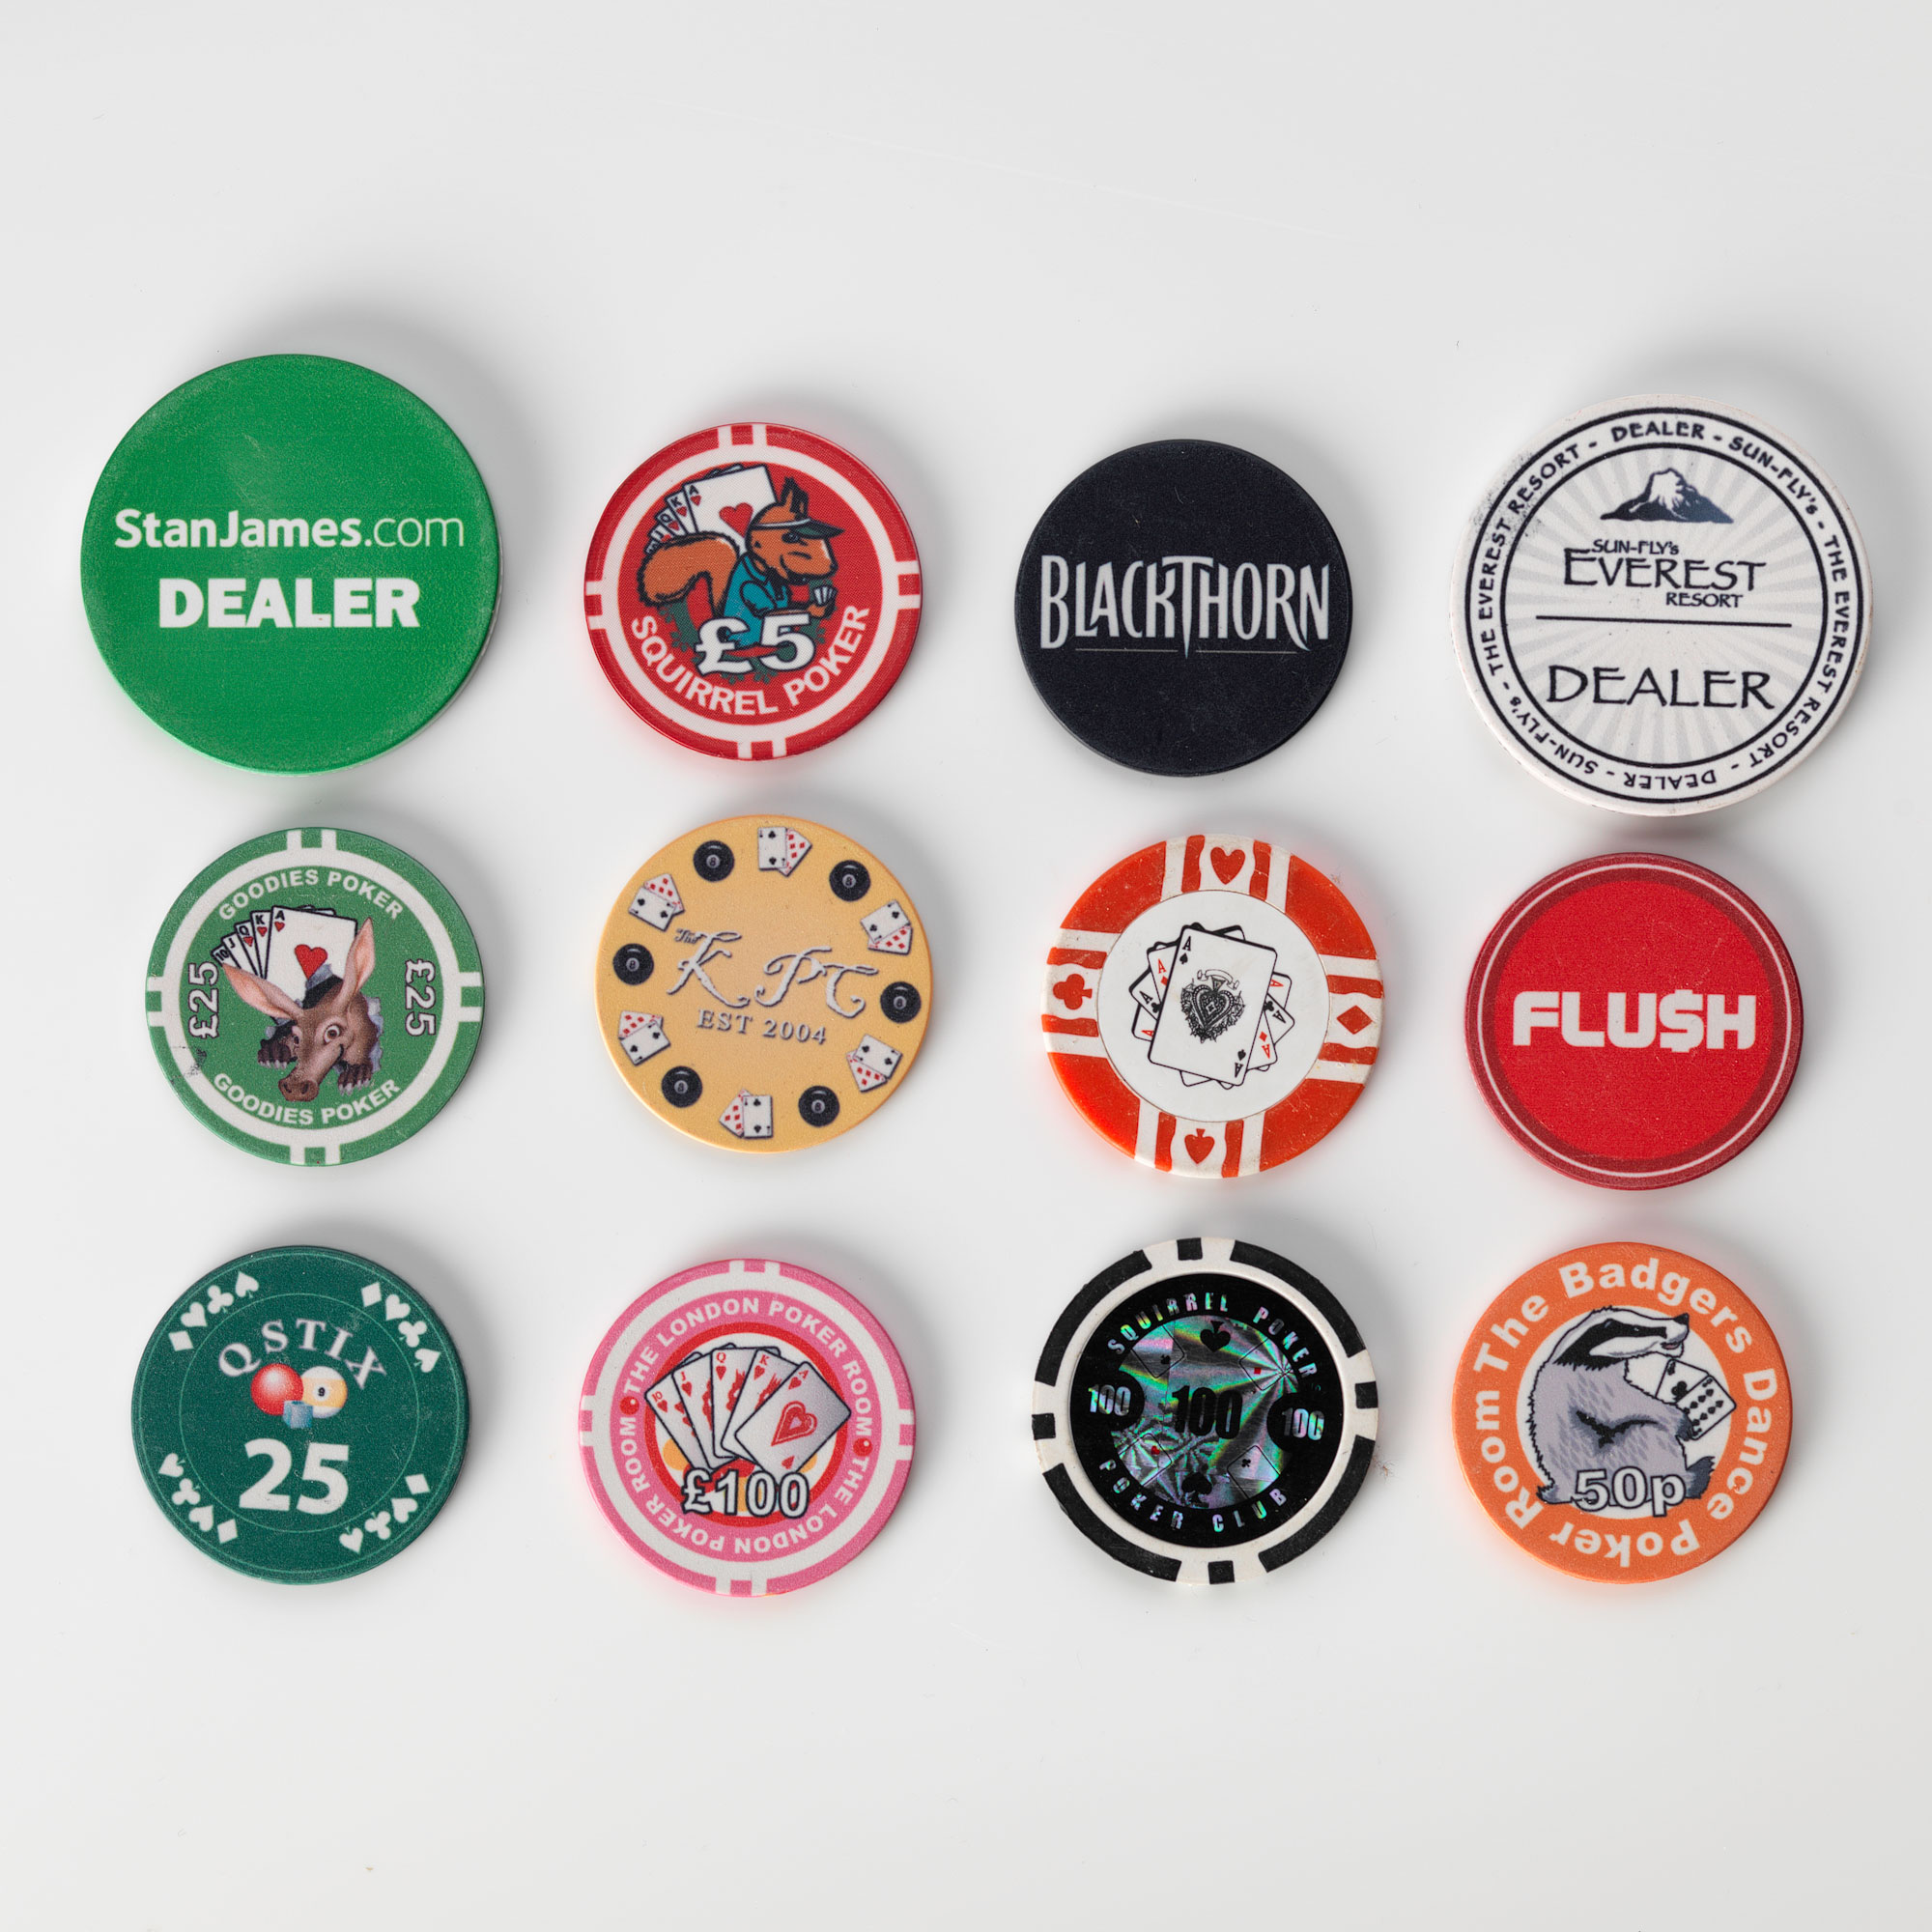 Product poker